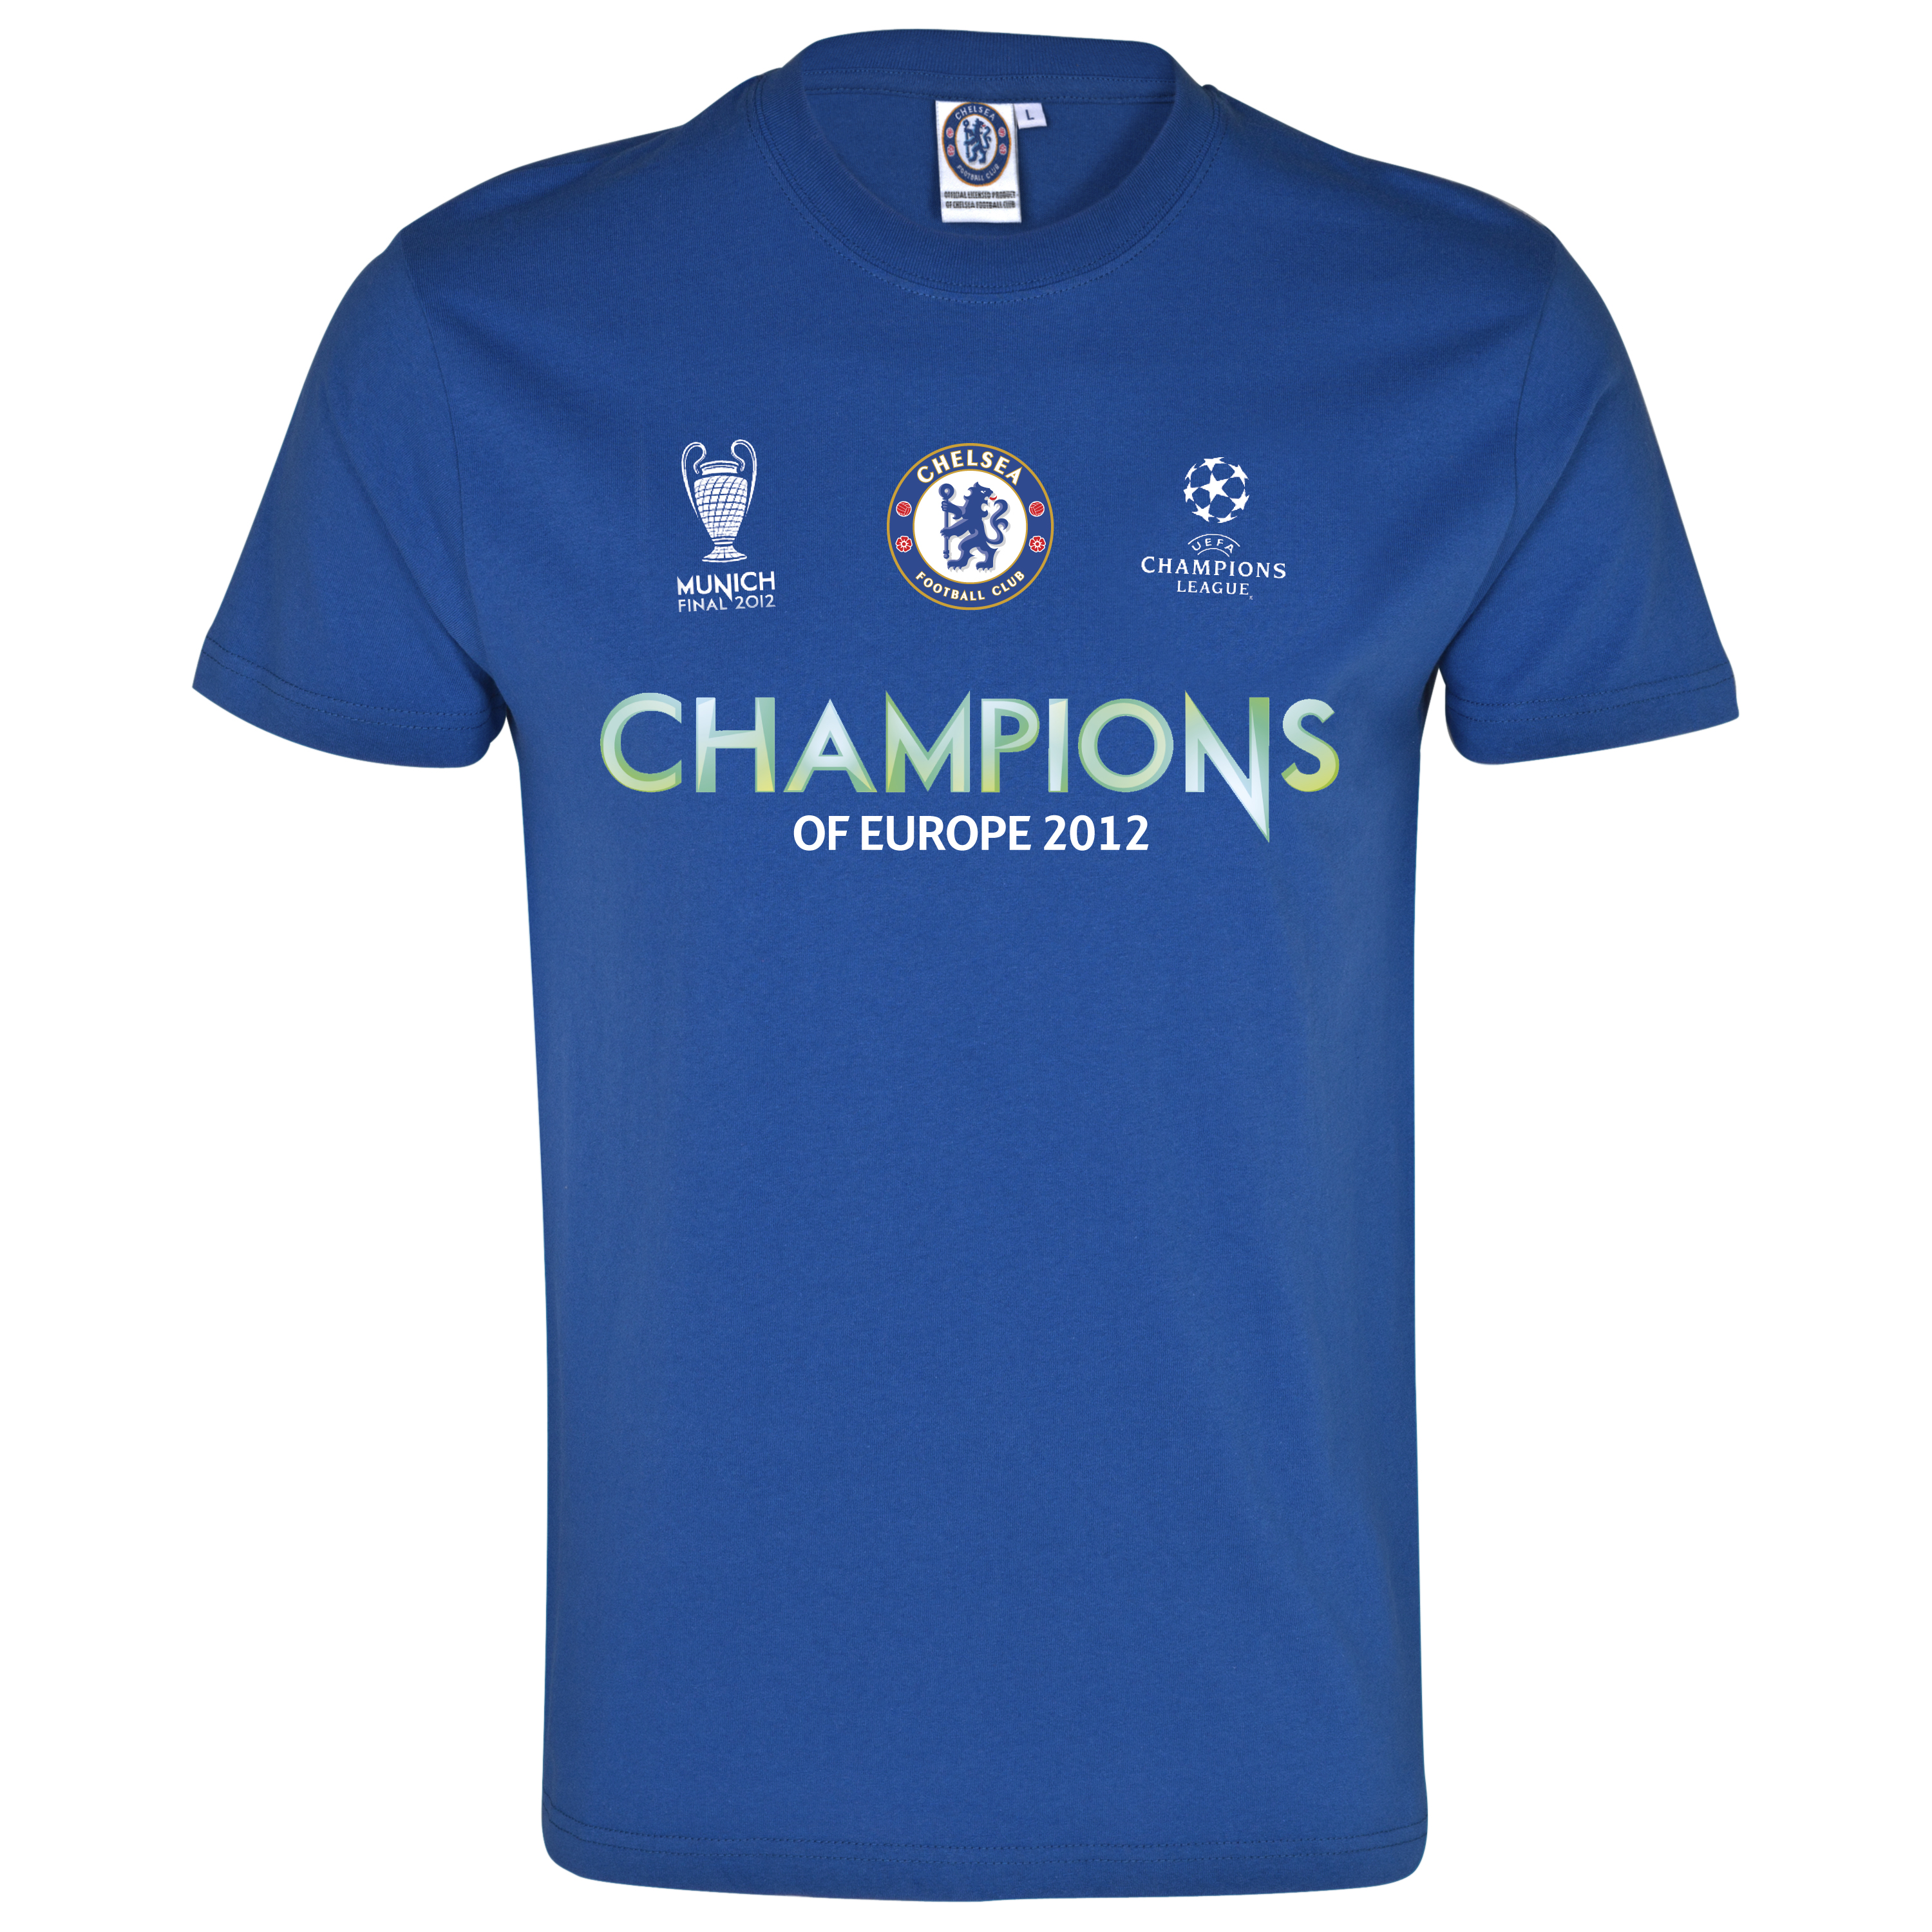 Chelsea UEFA Champions League Champions T-Shirt - Royal - Kids